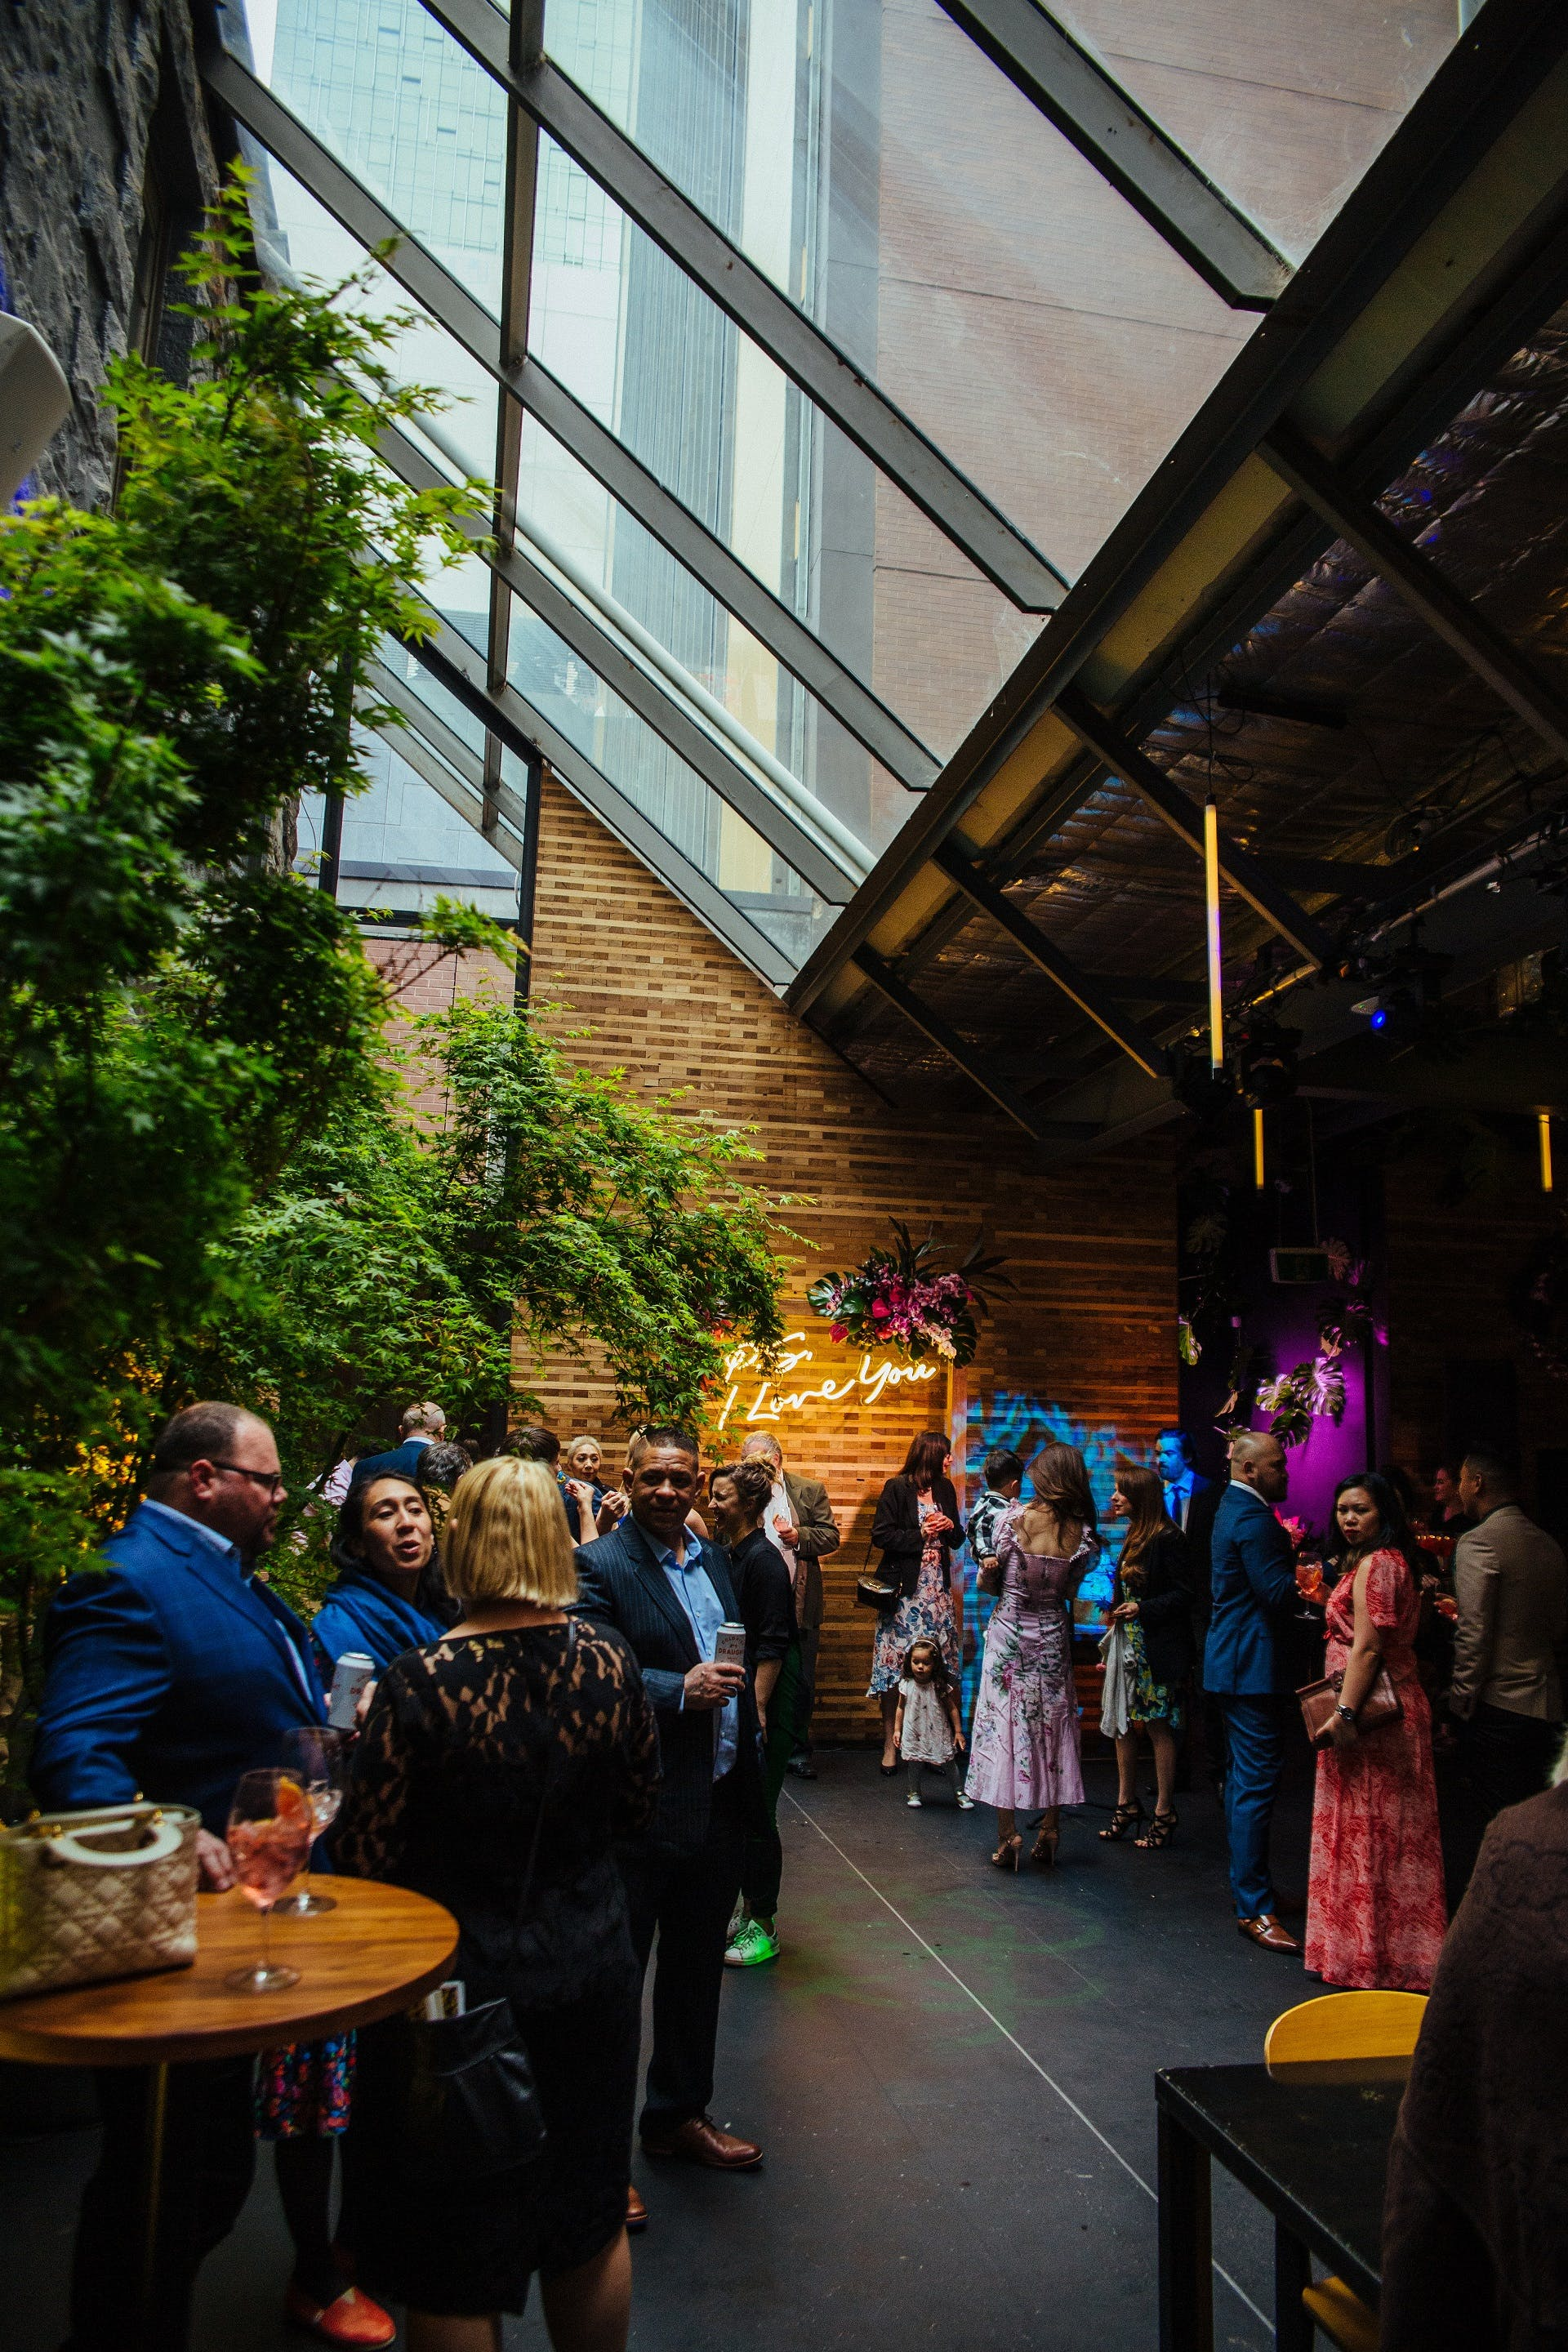 Indoor Courtyard, function room at Captain Melville, image 3